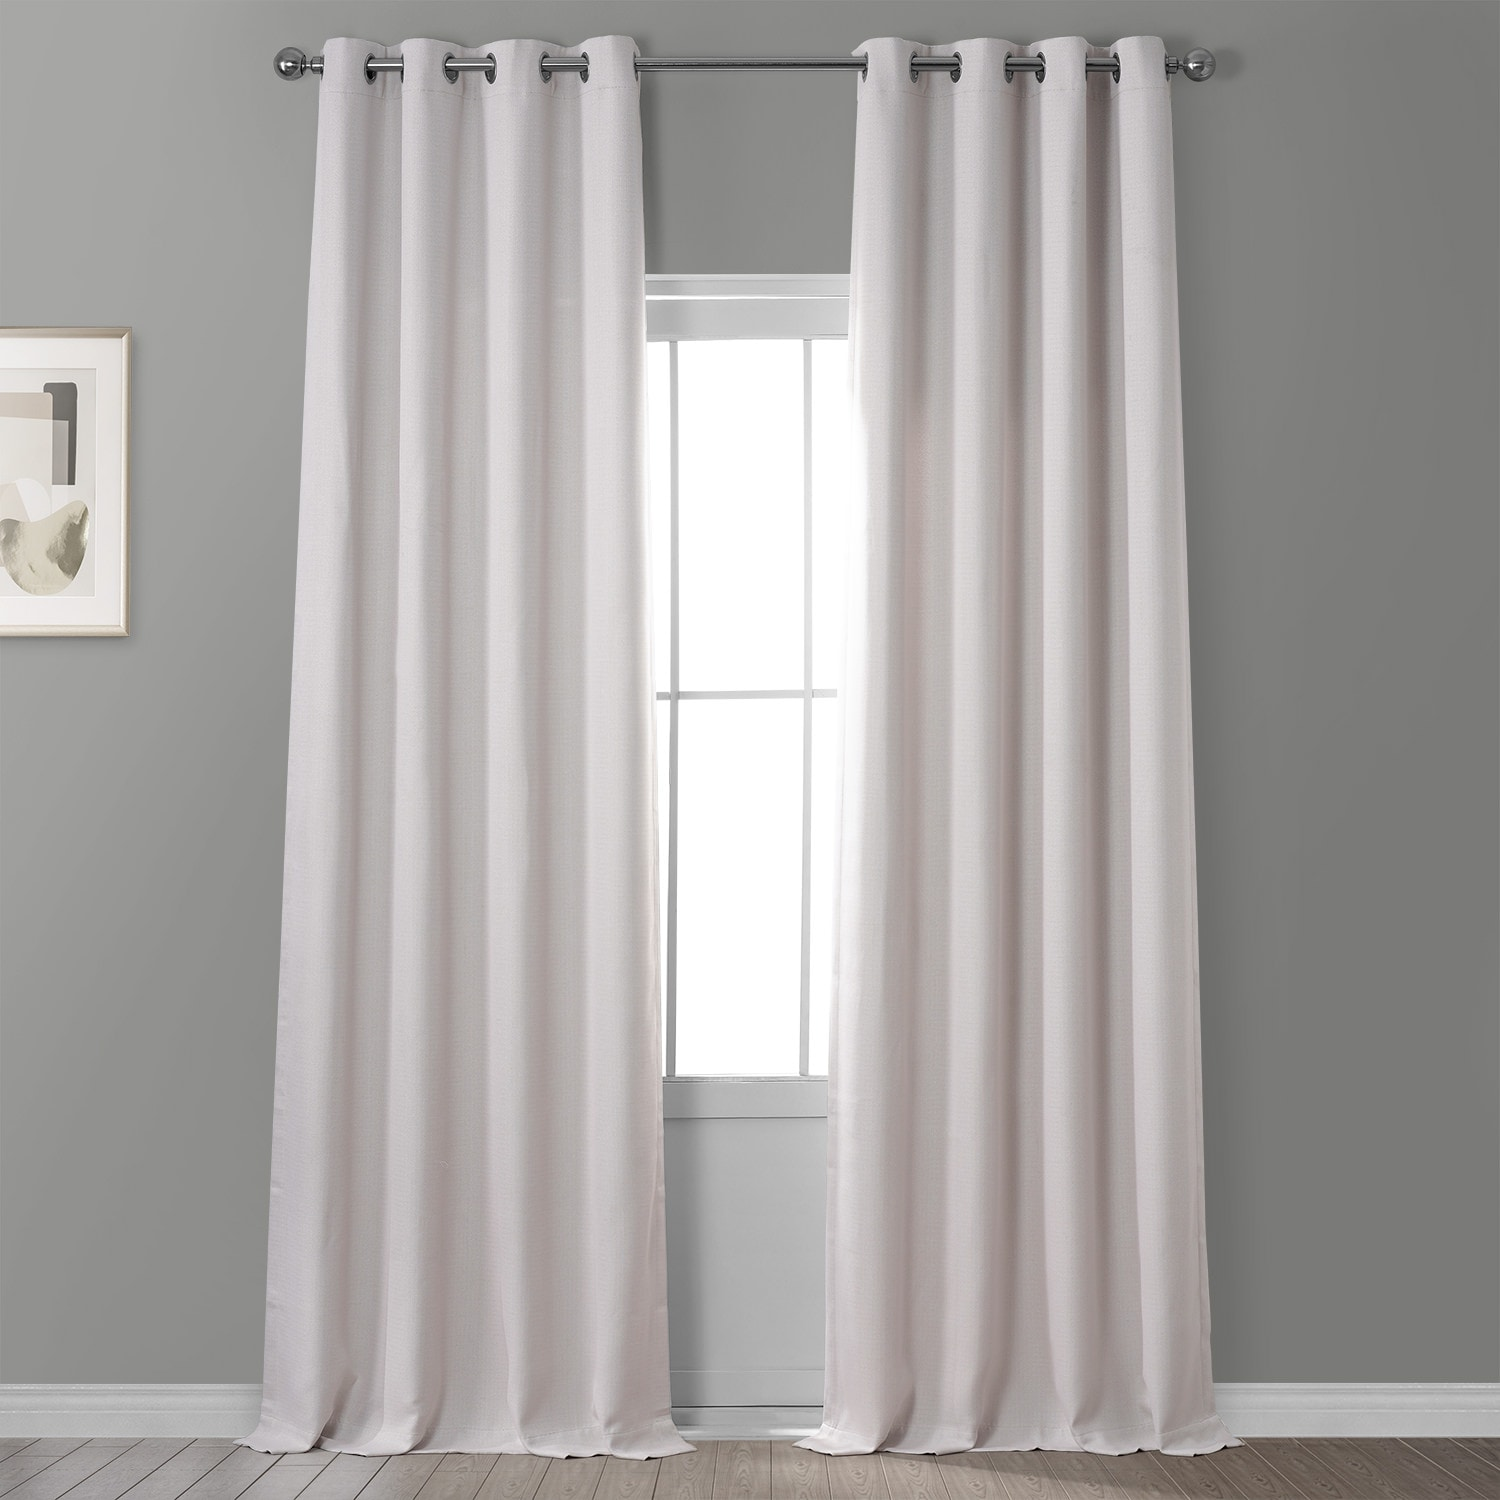 Birch Faux Linen Grommet Blackout Room Darkening Curtain